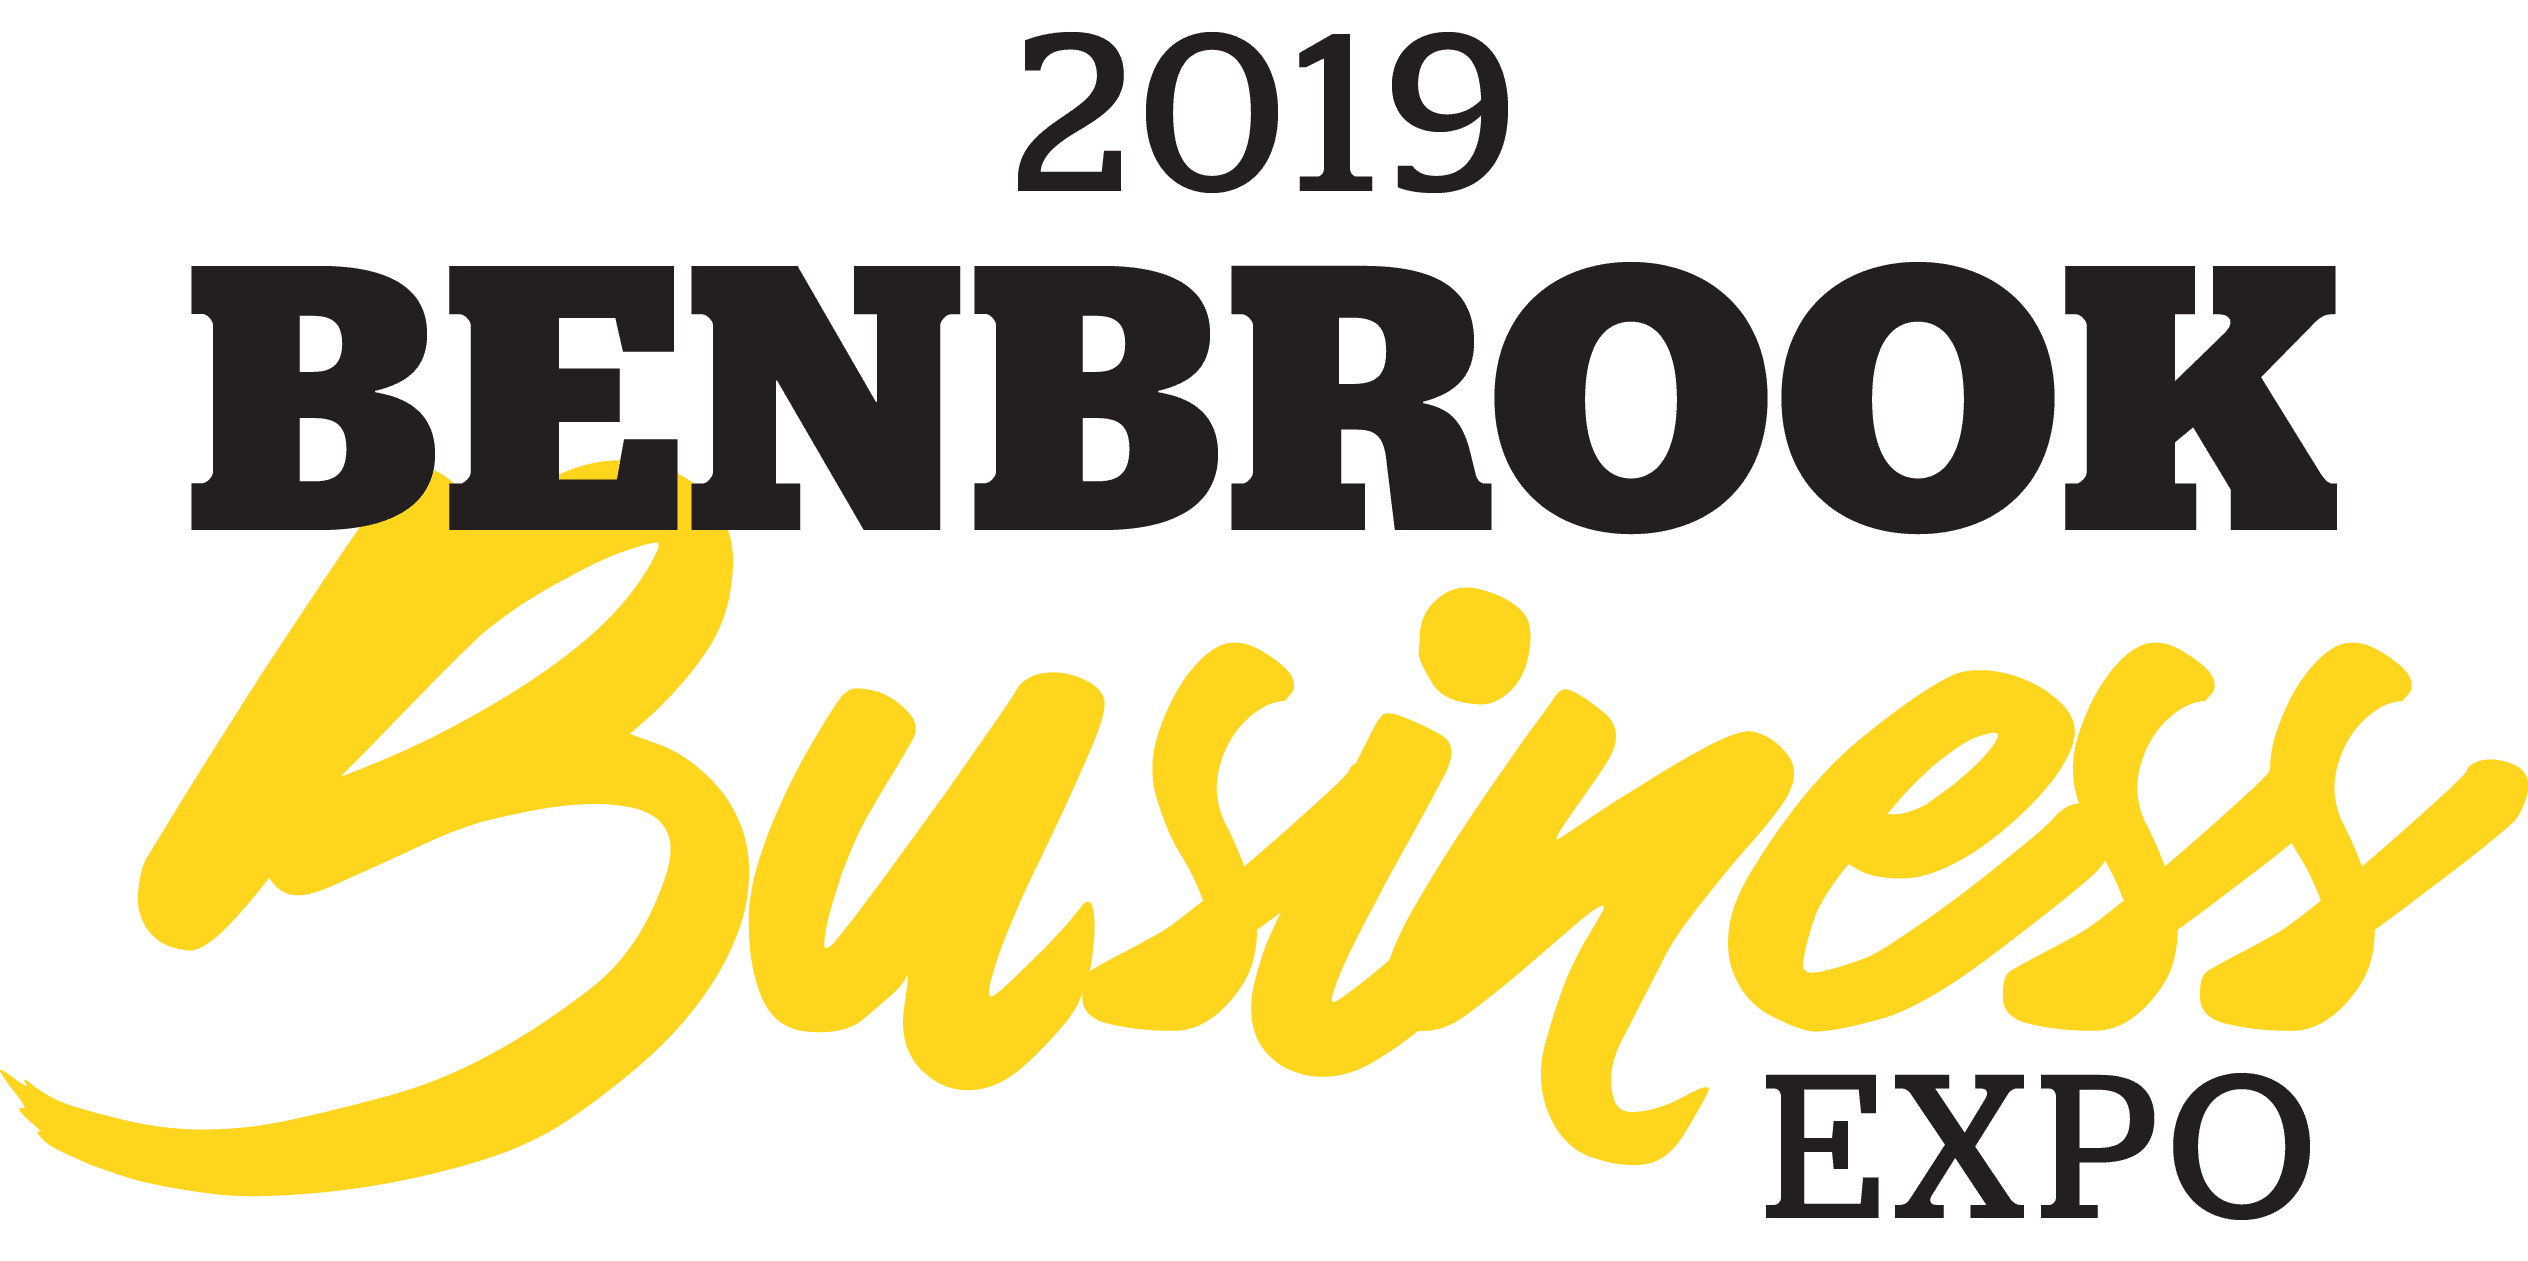 Benbrook-Business-Expo-2019